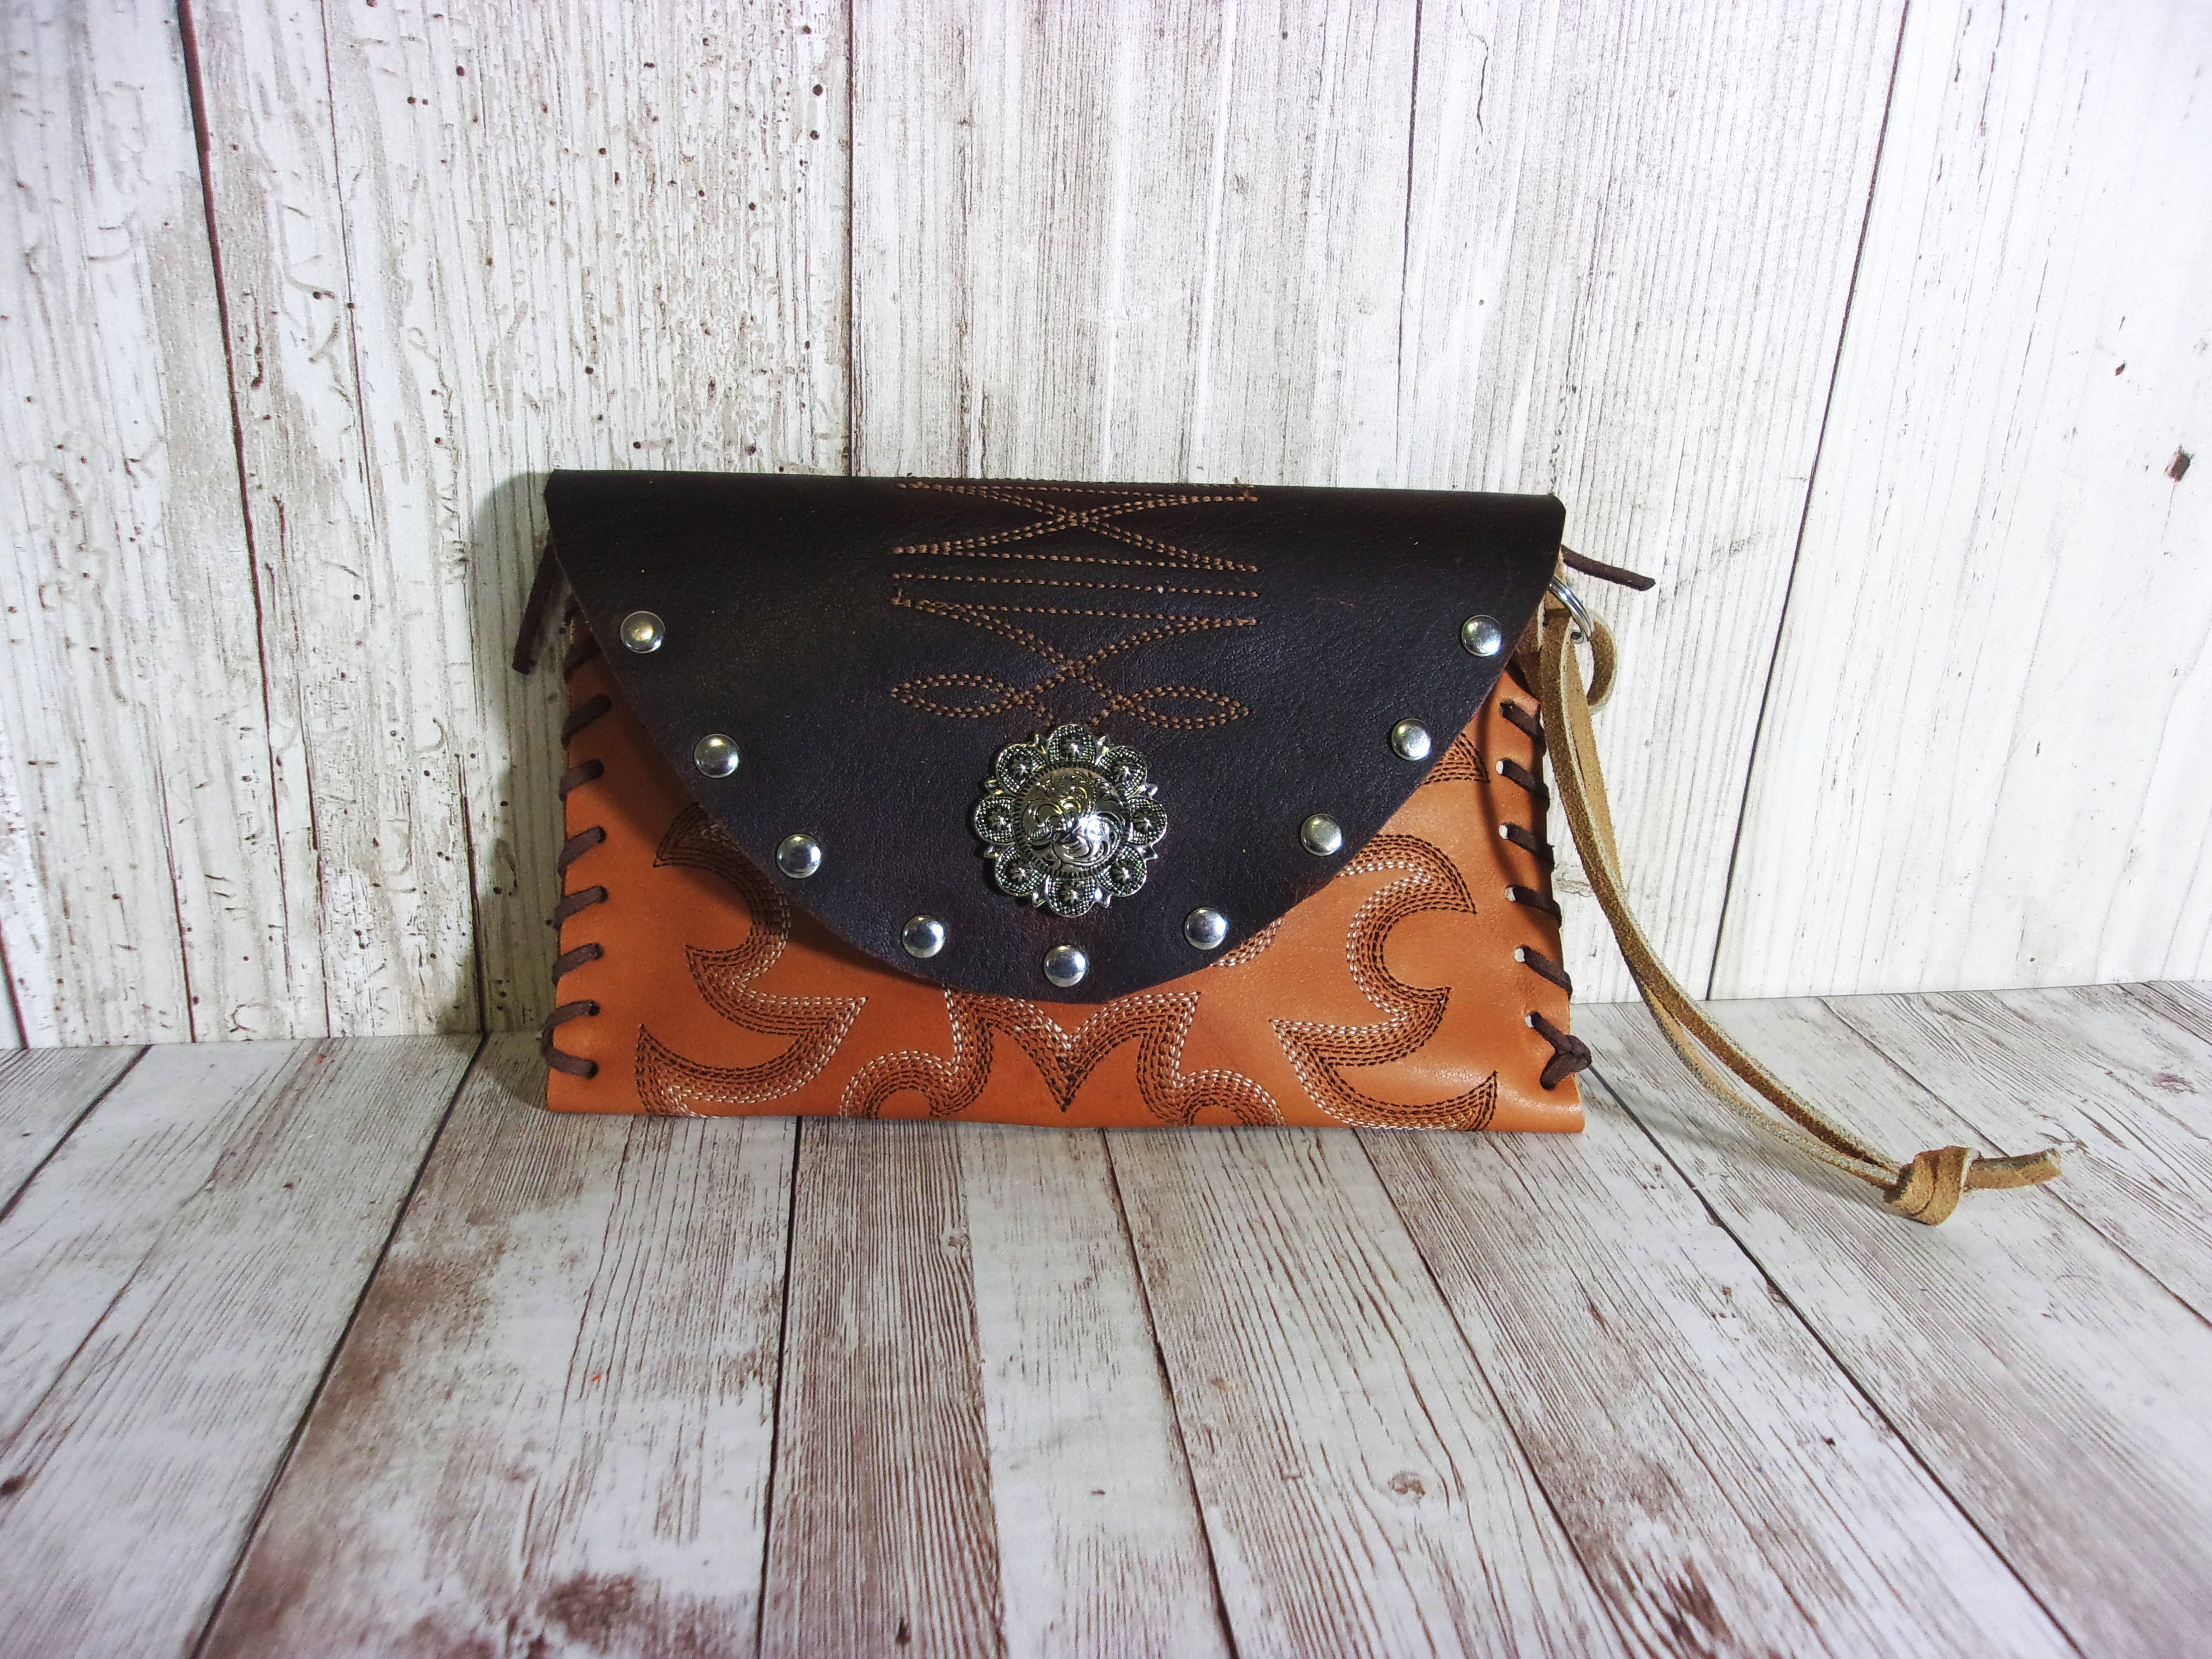 Leather Wristlet - Cowboy Boot Wallet - Handcrafted Leather Wristlet  WR16 cowboy boot purses and handcrafted western purses and handbags Chris Thompson Bags